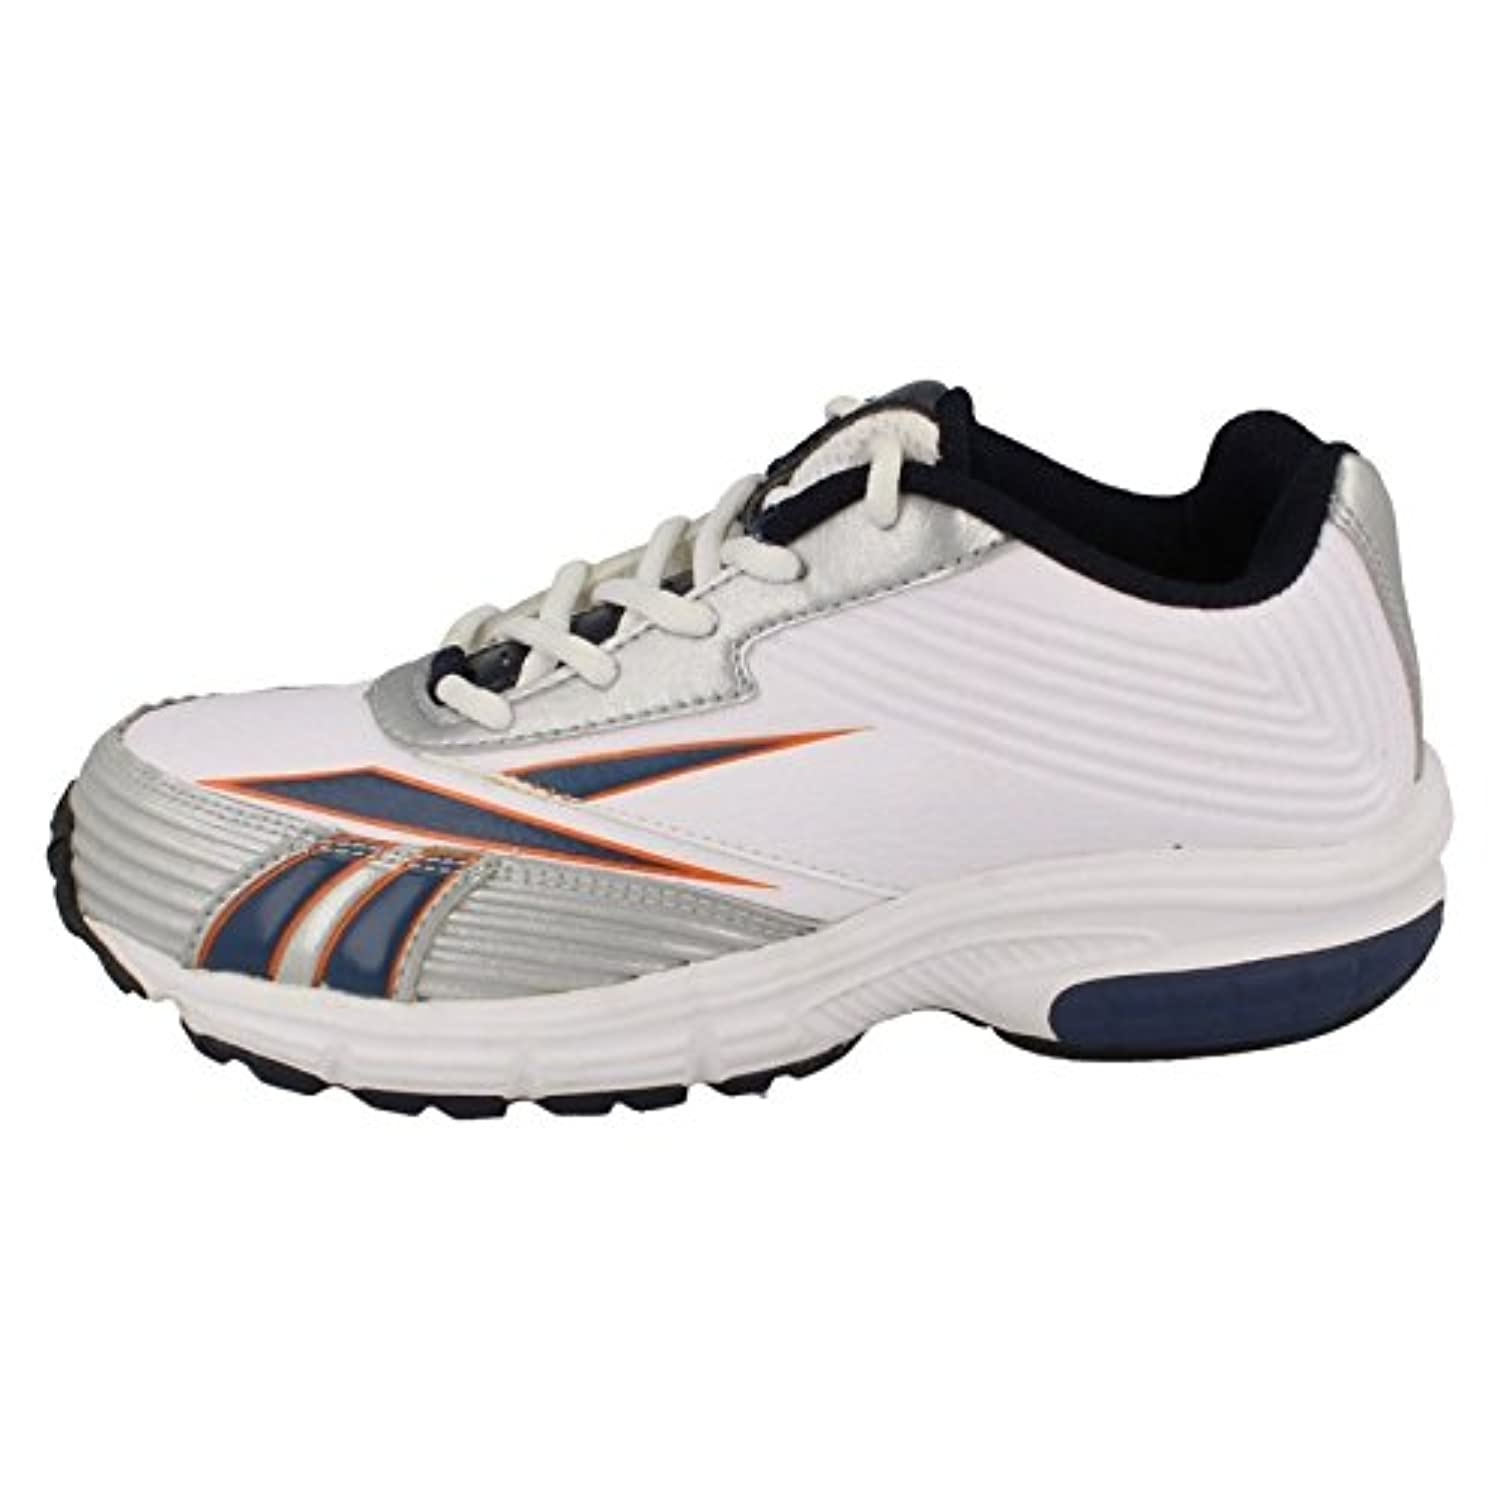 Boys Reebok Sporty Trainers Winning Stride II - White/Navy/Silver - UK Size 1.5 - EU Size 32.5 - US Size 2